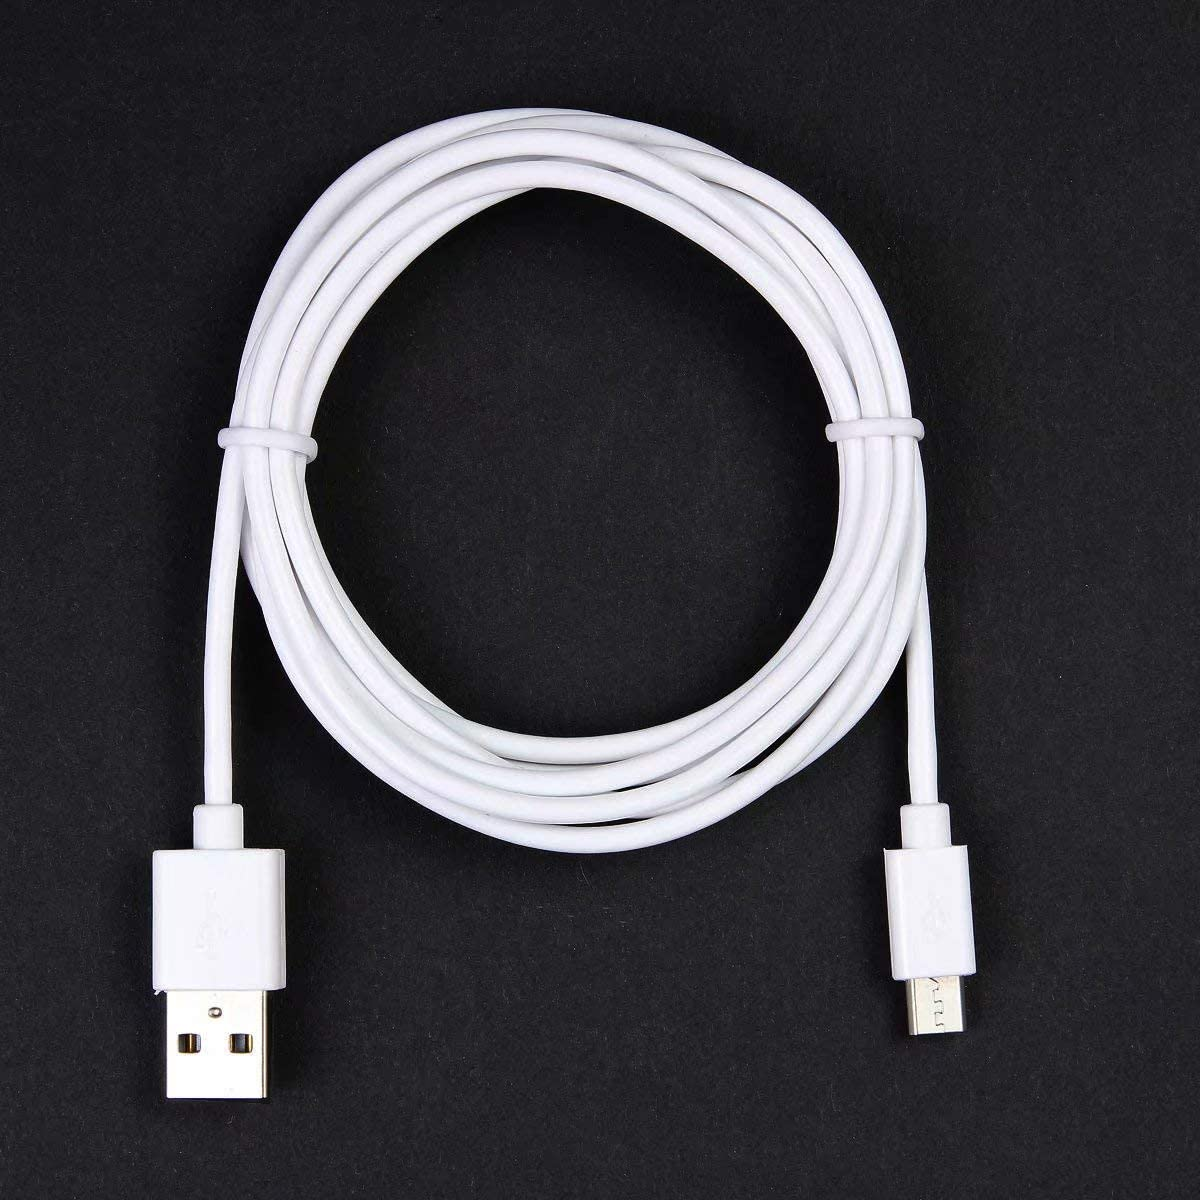 6 Feet POWE-Tech USB Power Charging Cable Charger Cord Lead for Bang/&Olufsen Beoplay H8 Headpone White